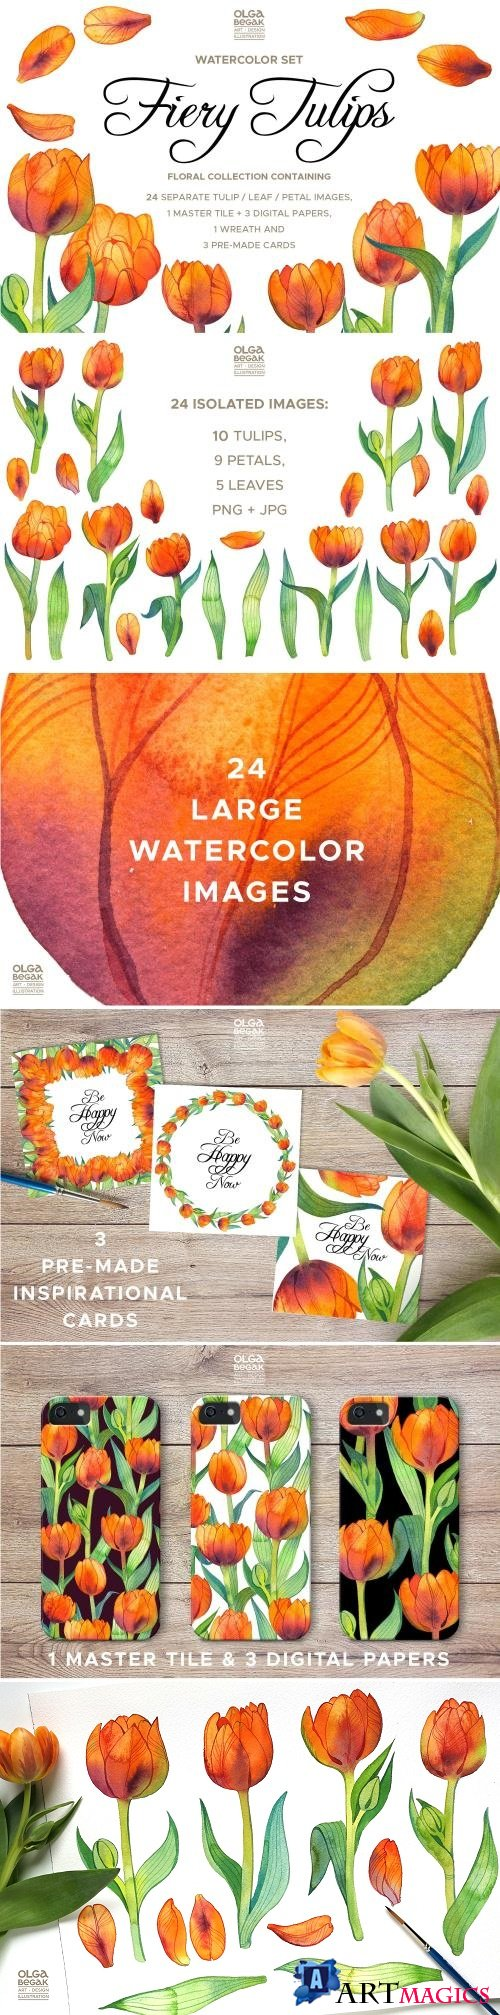 Fiery Tulips Watercolor Collection - 2394687